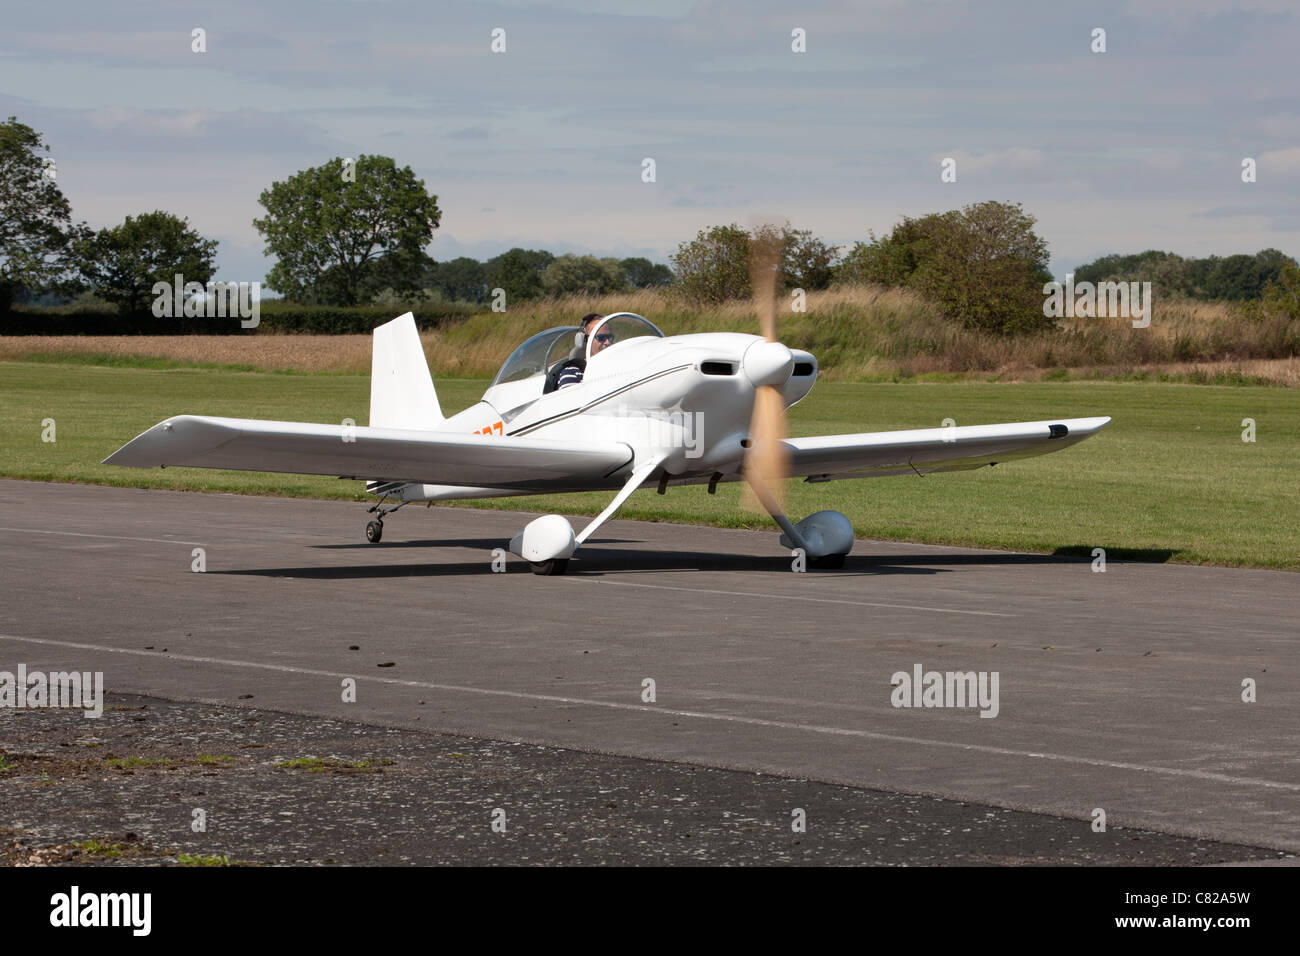 Vans RV-3A G--RODZ taxiing at Breighton Airfield Stock Photo